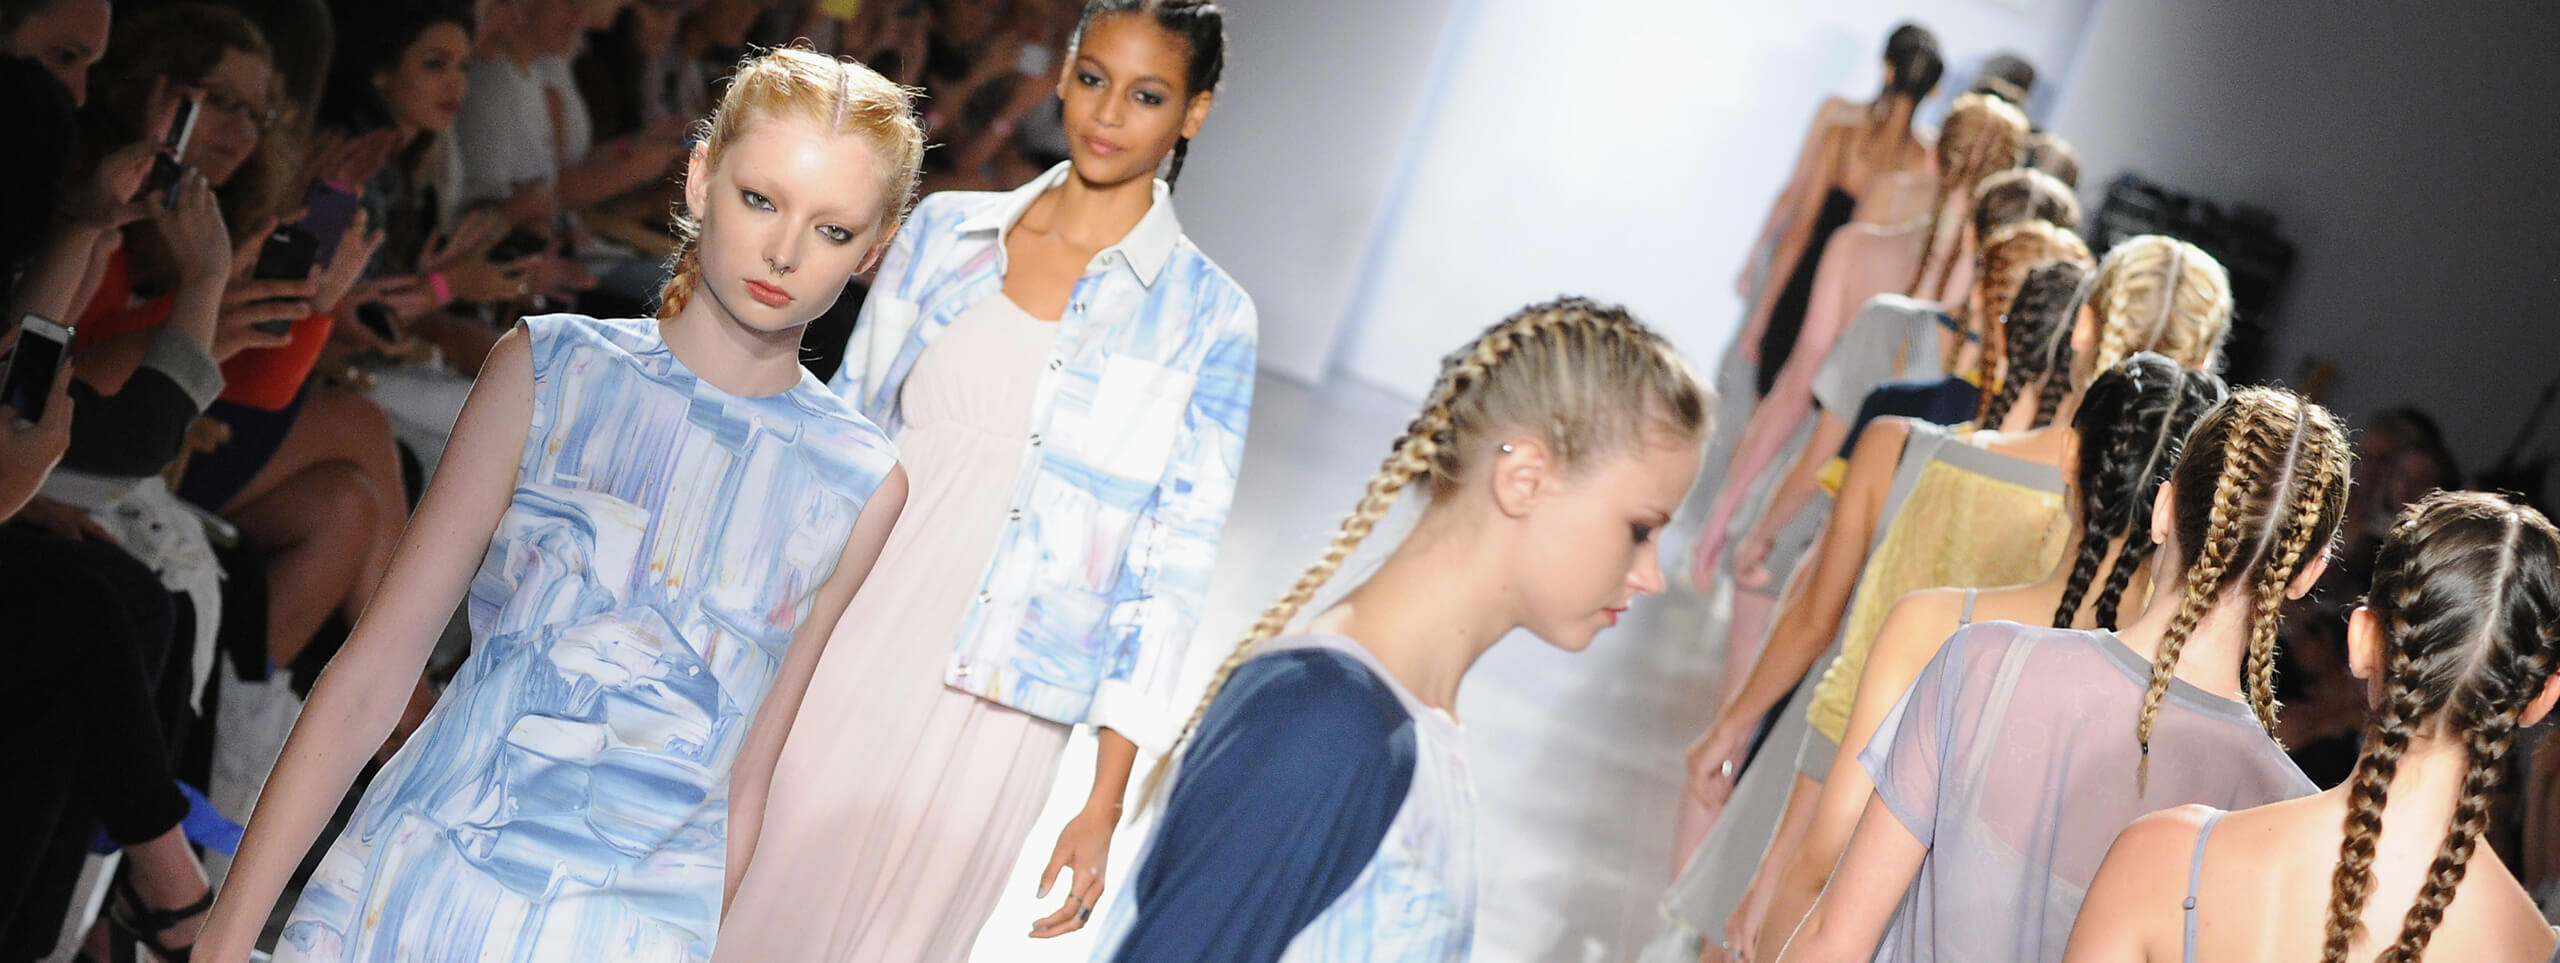 Models wear braided hairstyles on the runway